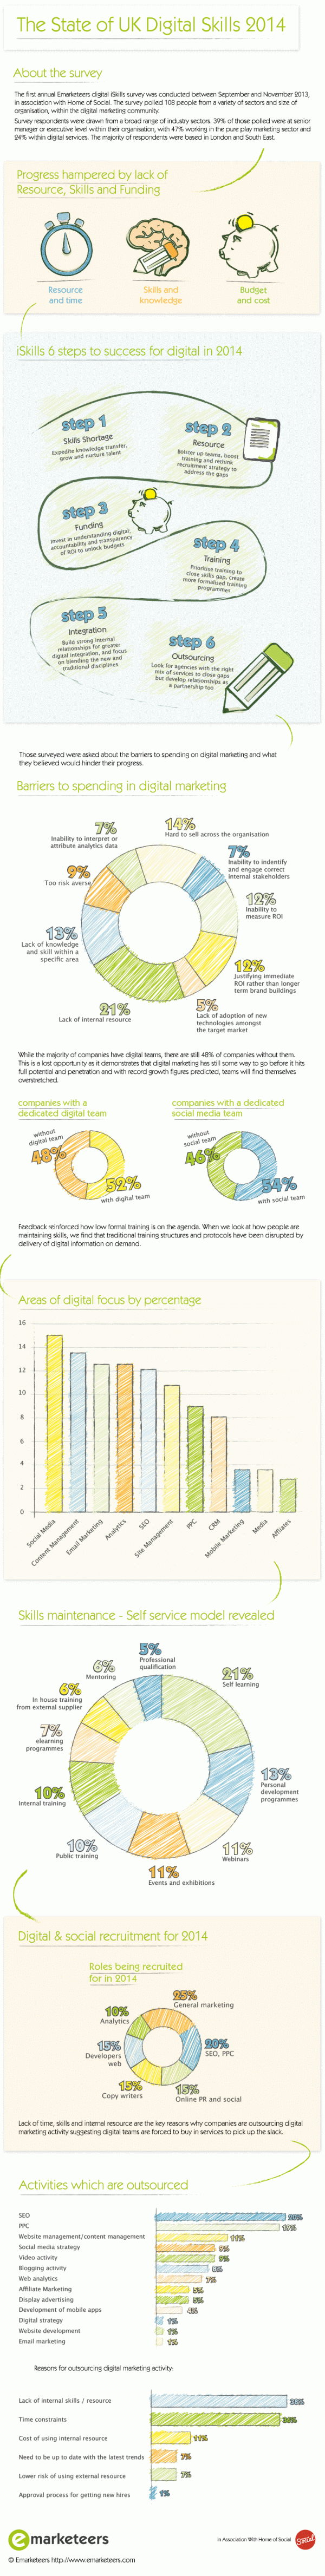 State of UK Digital Skills - Infographic